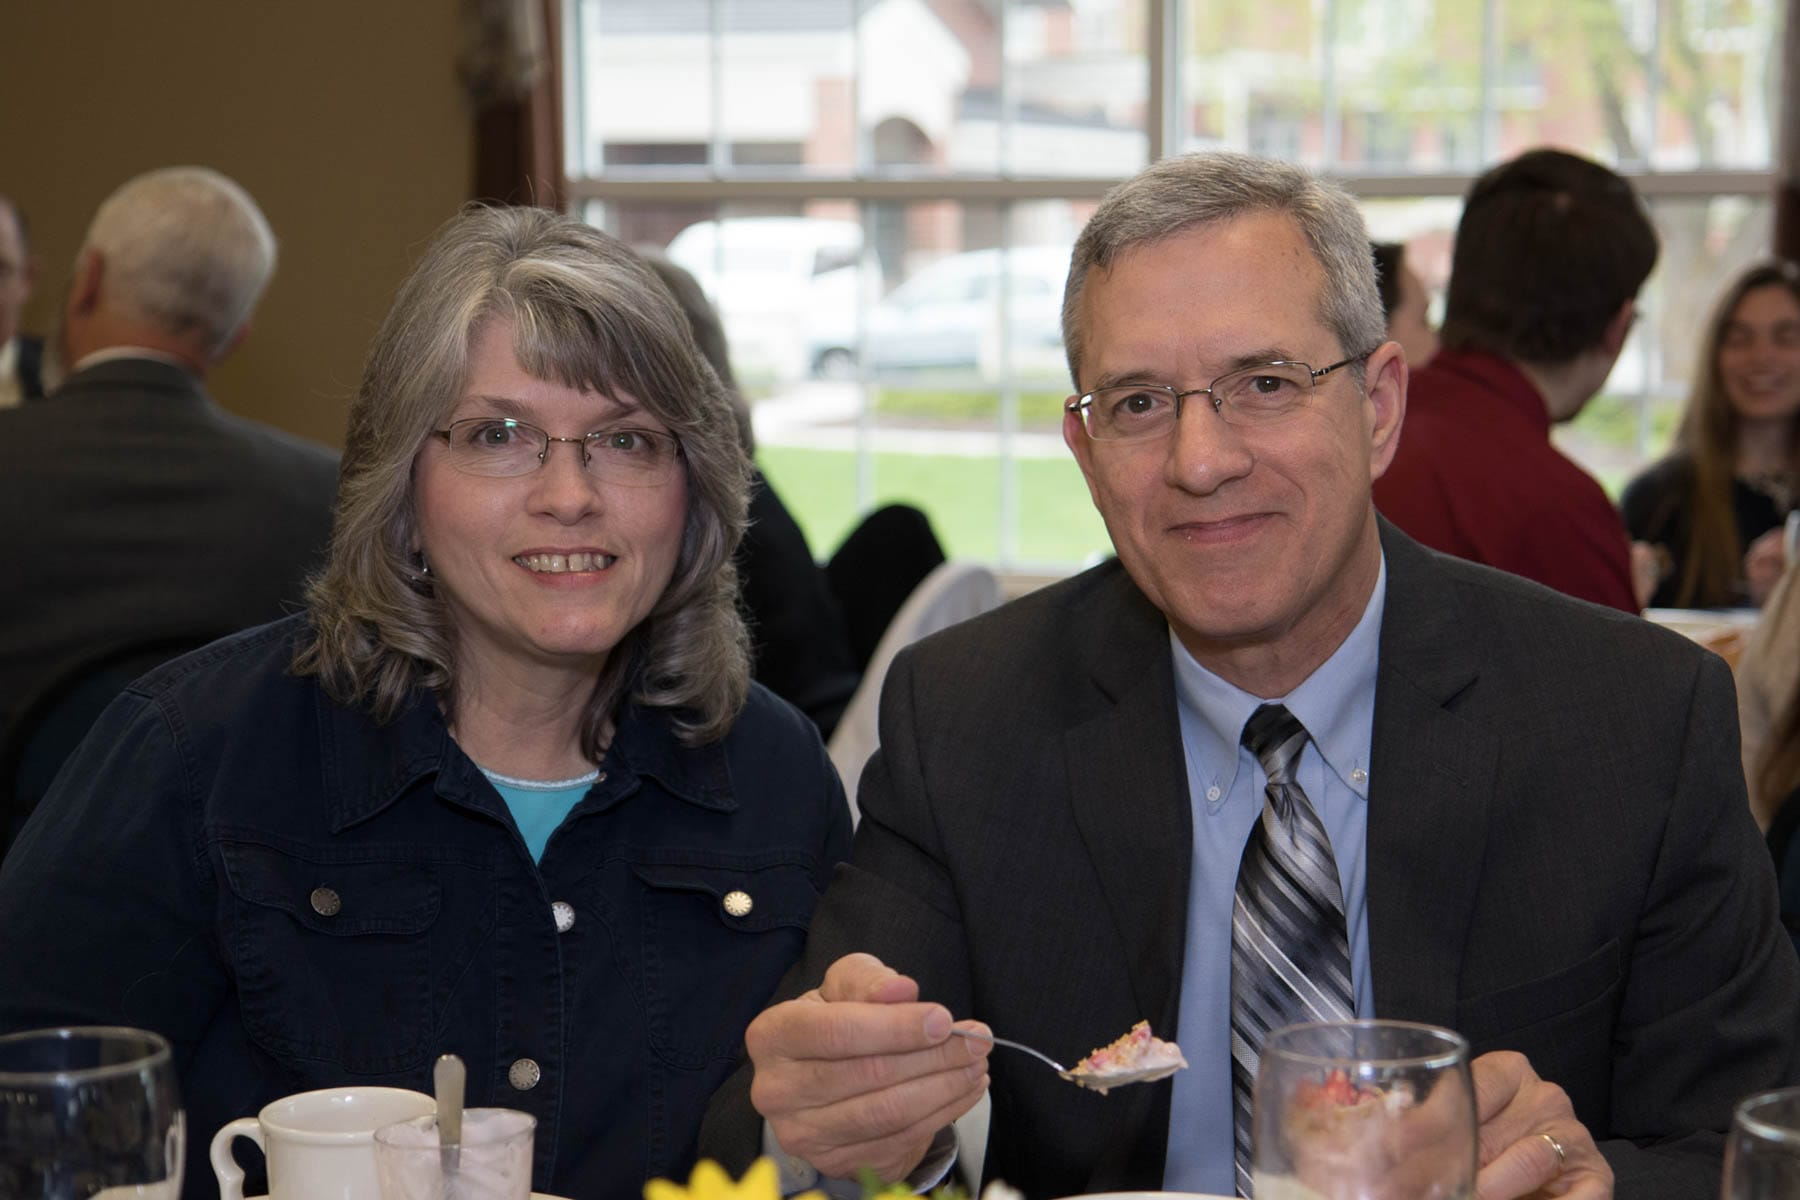 Fairhaven Baptist Church Preaching Conference 2016 Alumni Breakfast (22 of 33)